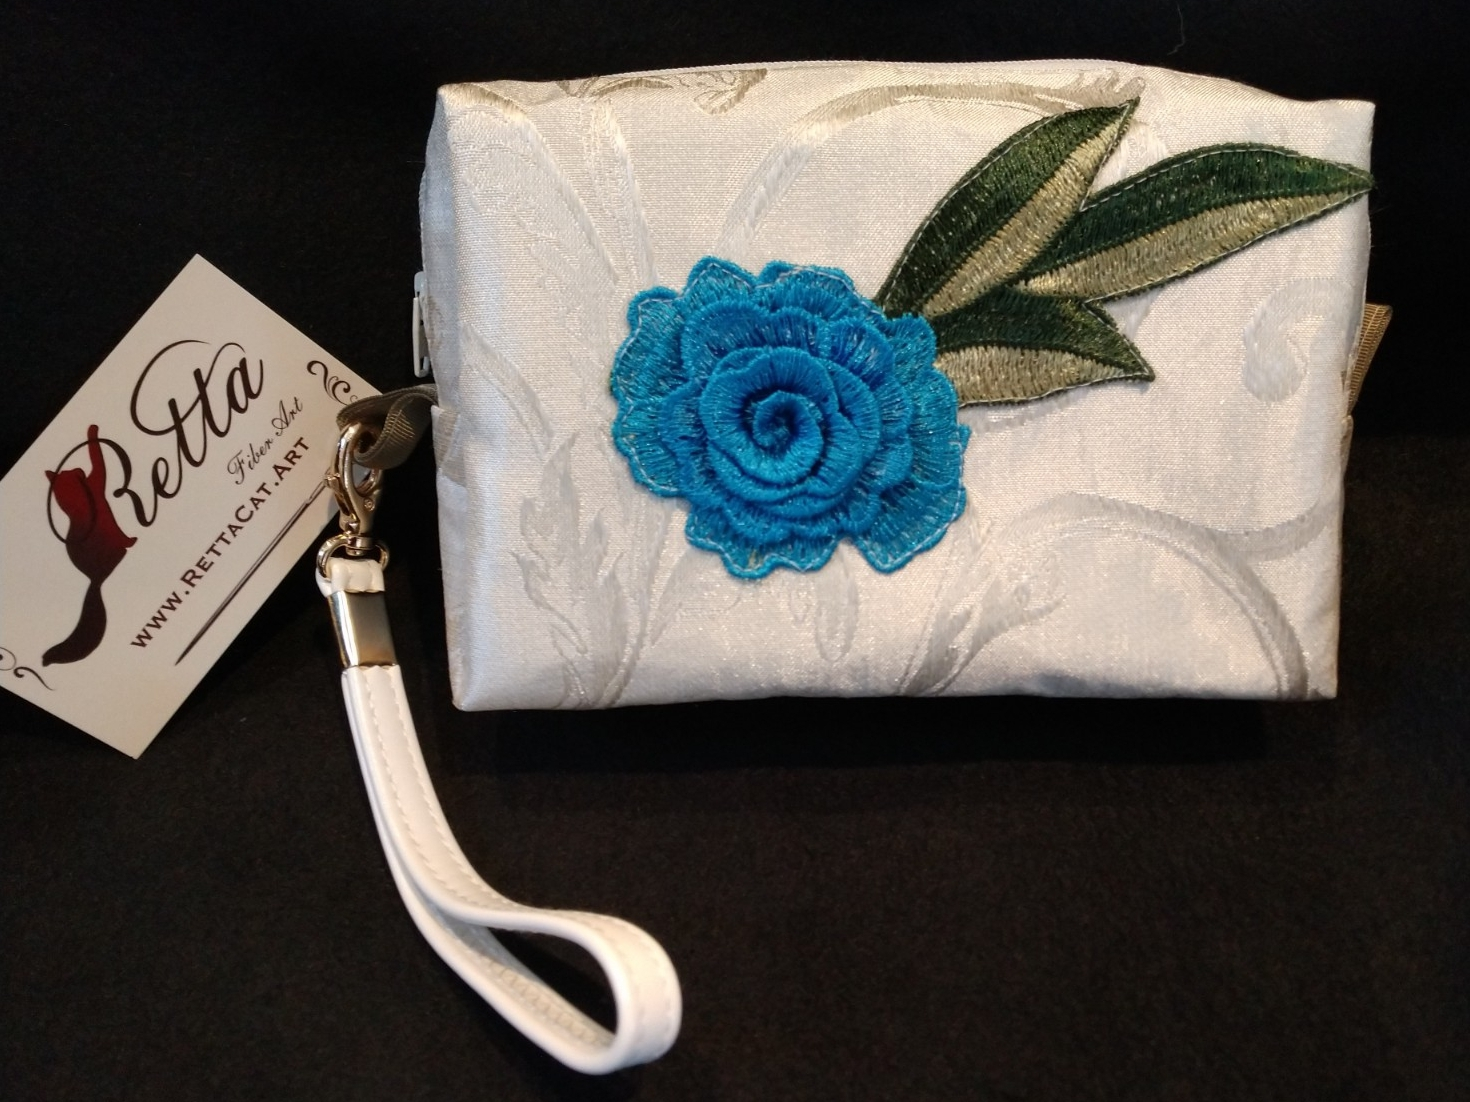 Clutch Bag/Wristlet/Makeup Bag - Single Blue Rose Applique on Ivory Brocade